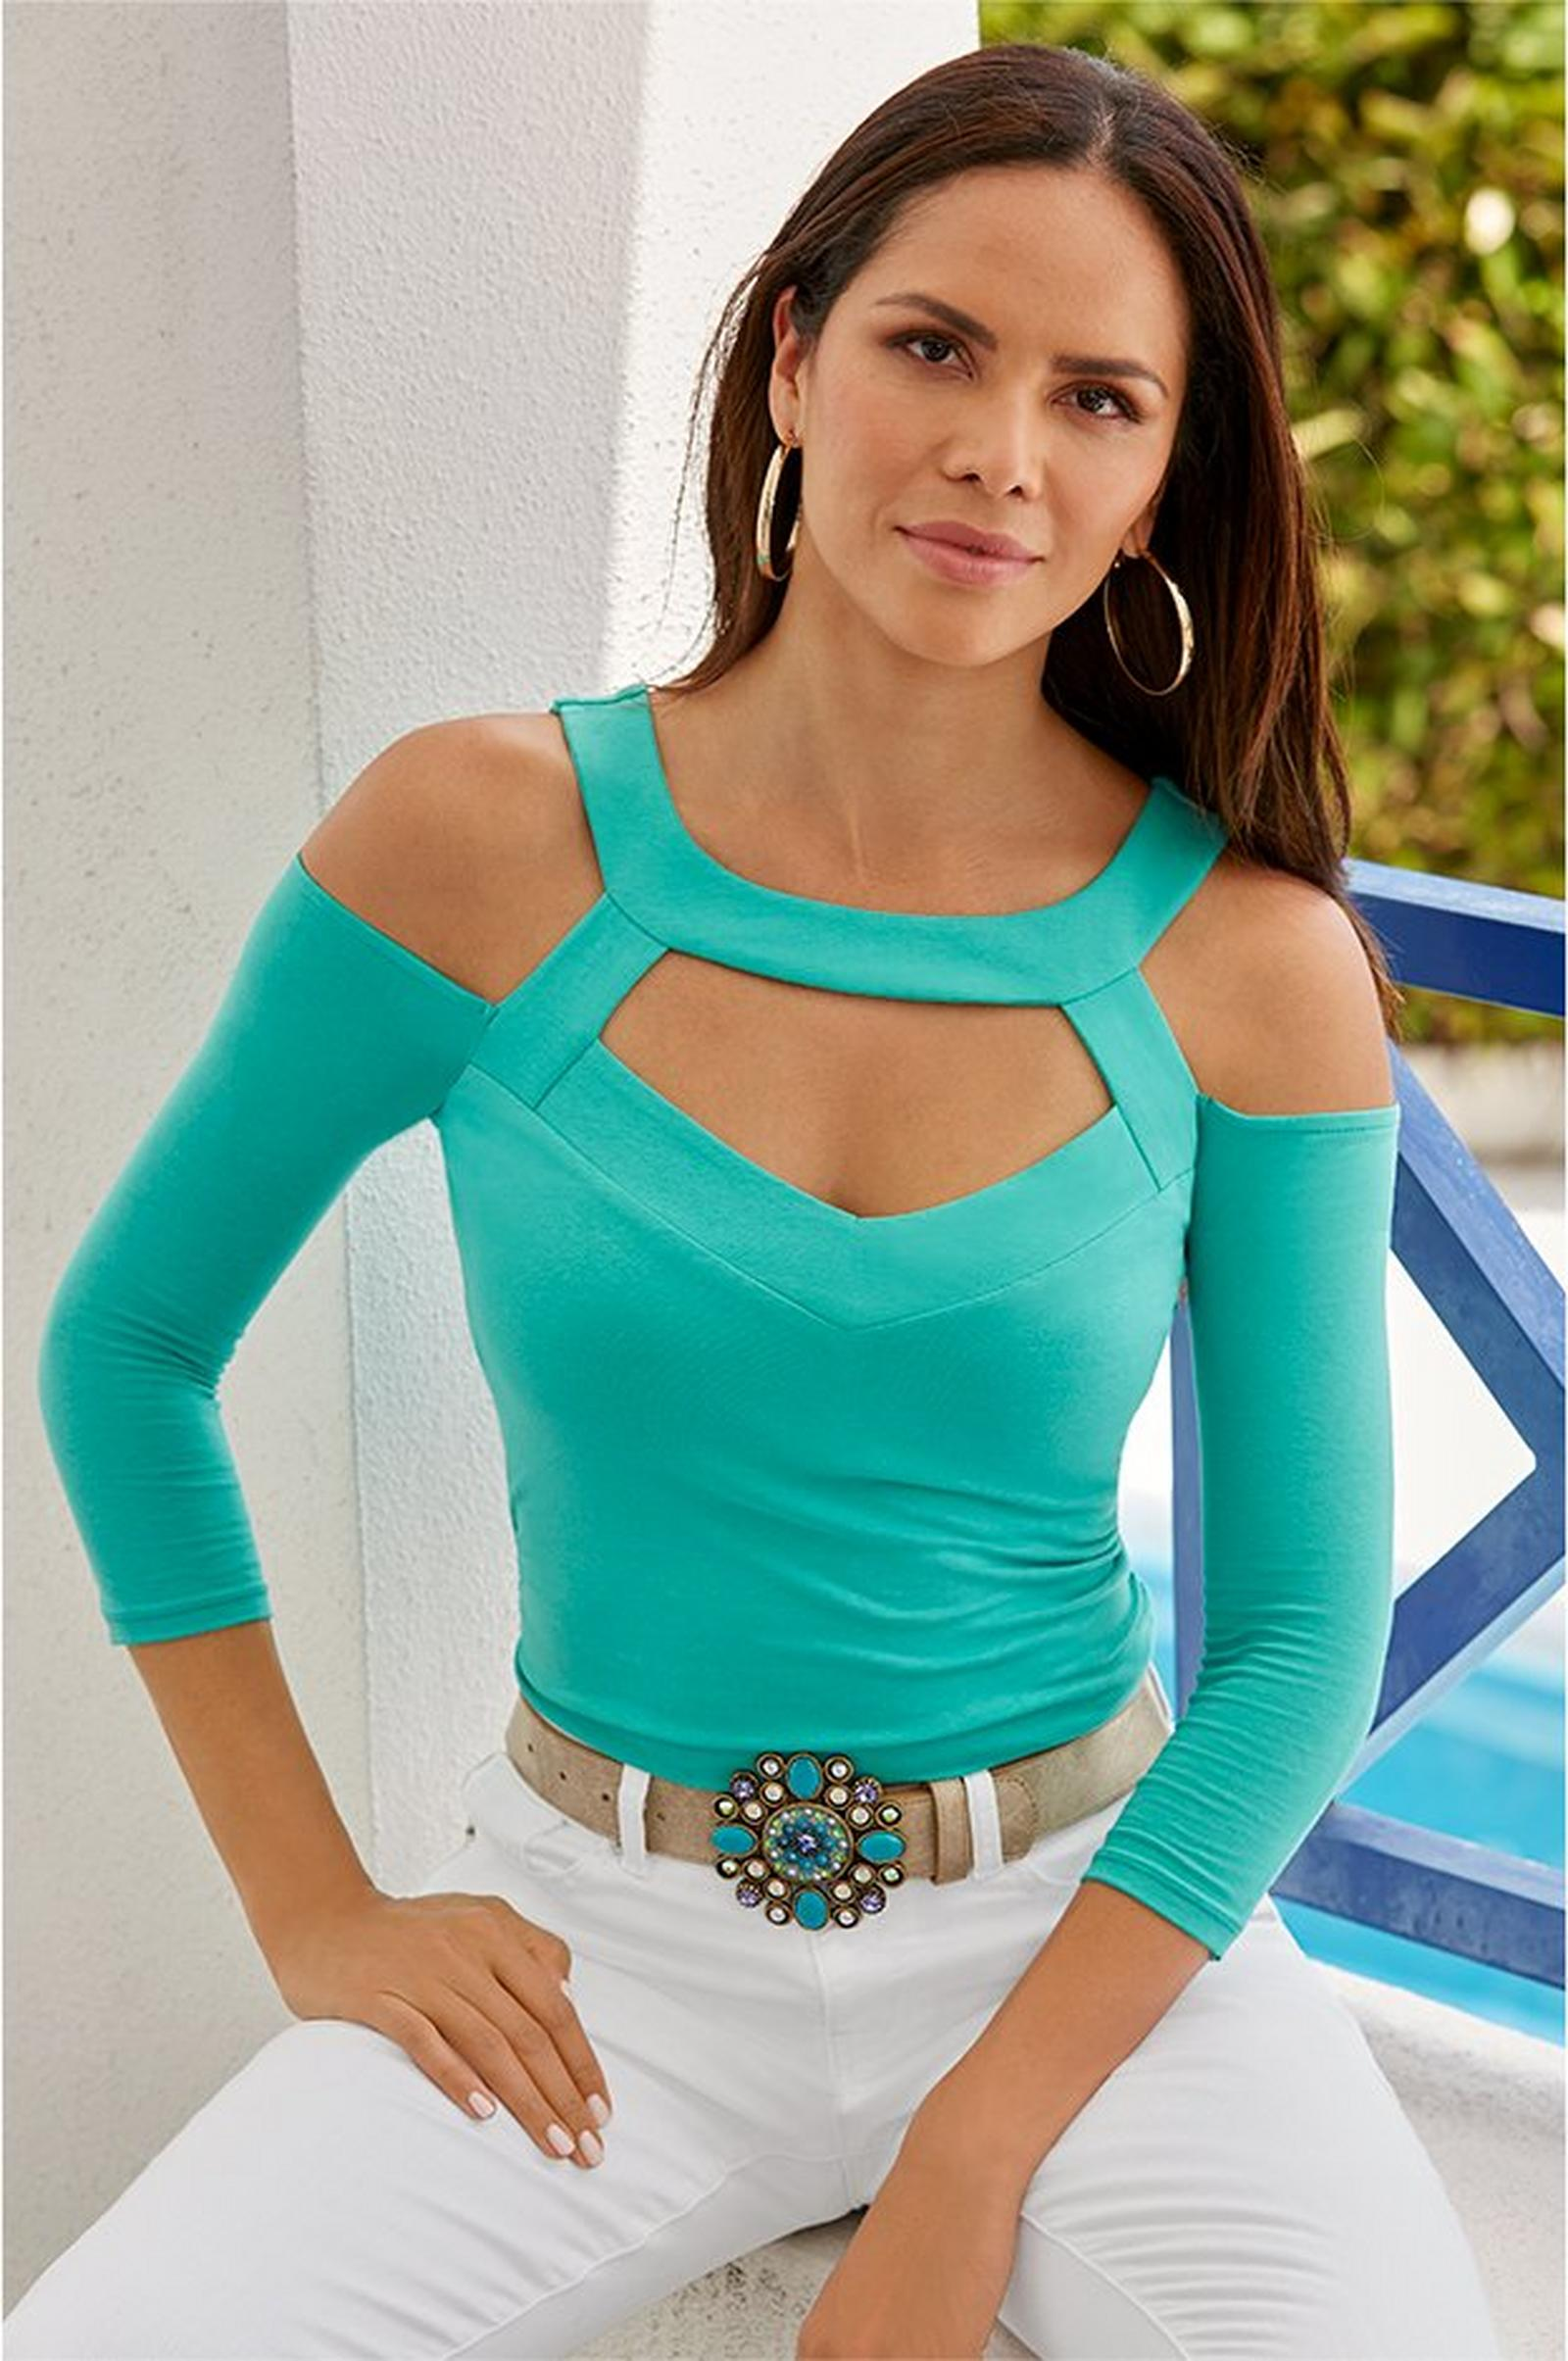 model wearing teal cutout so sexy top with turquoise jewel belt and white pants.